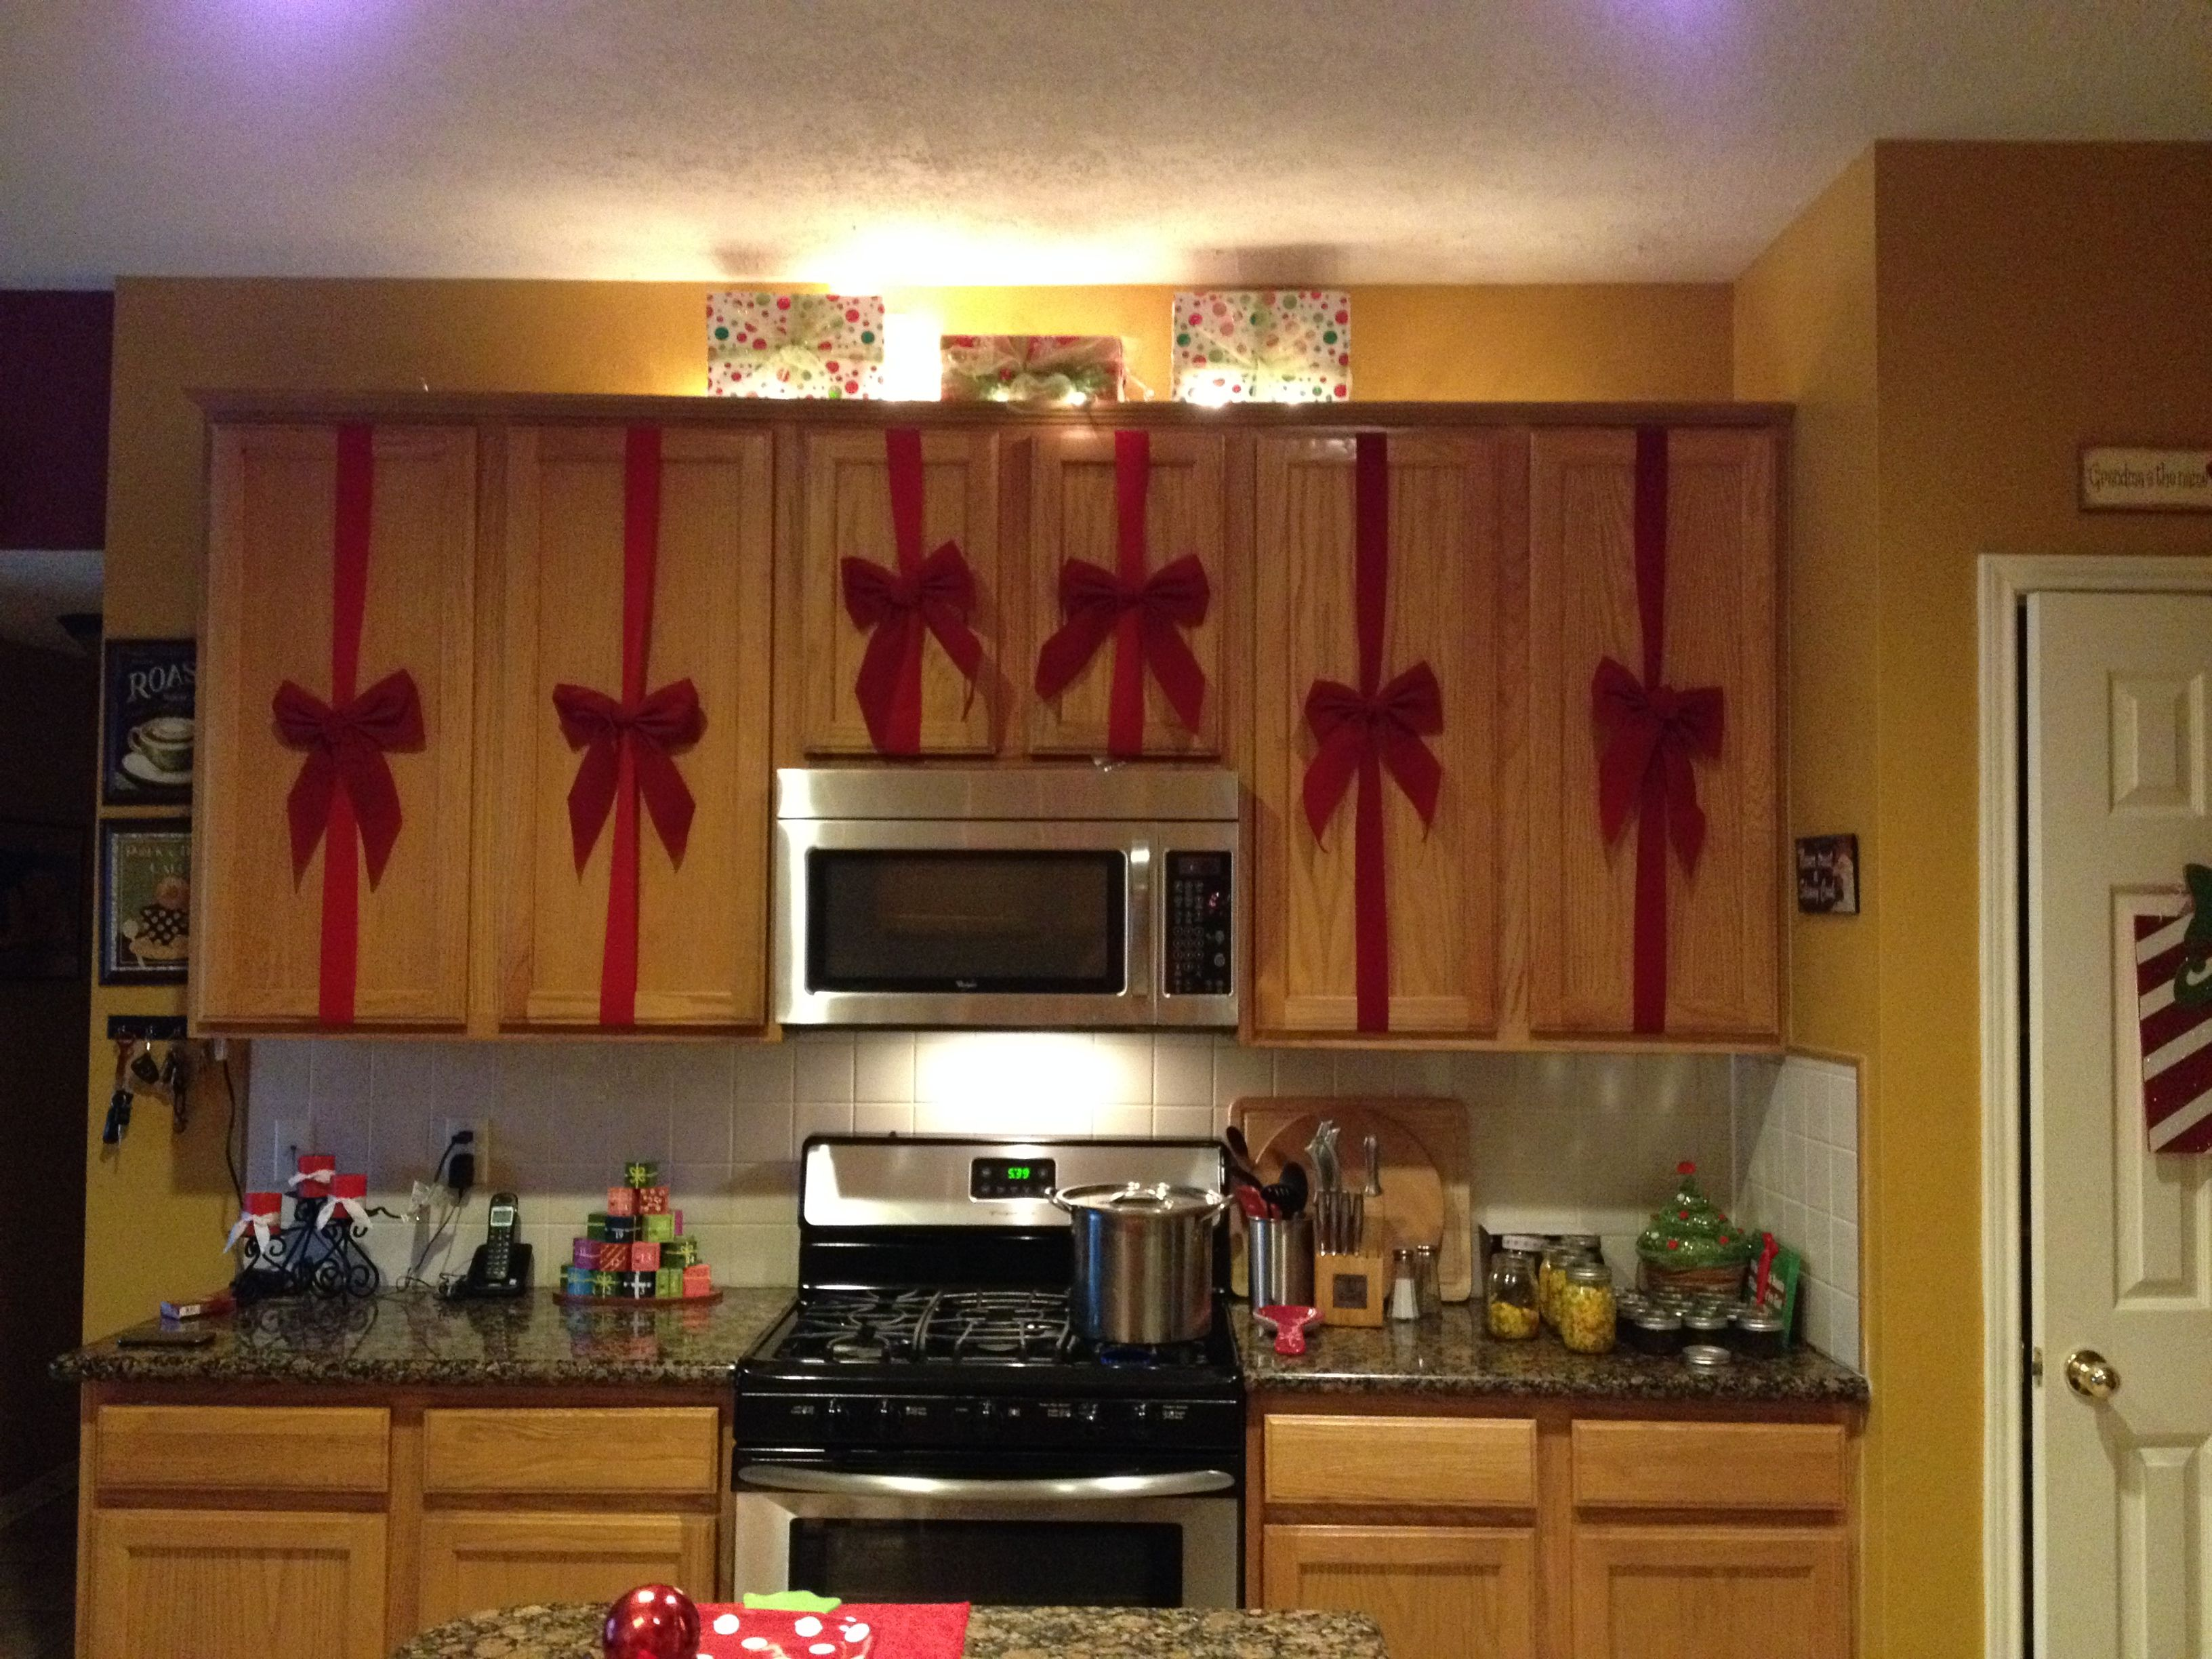 Christmas Kitchen Decorating Easy Red Ribbons And Bows On The Cabinet Doors And Some Wrapped Box Holiday Kitchen Decor Christmas Kitchen Cozy Kitchen Decor